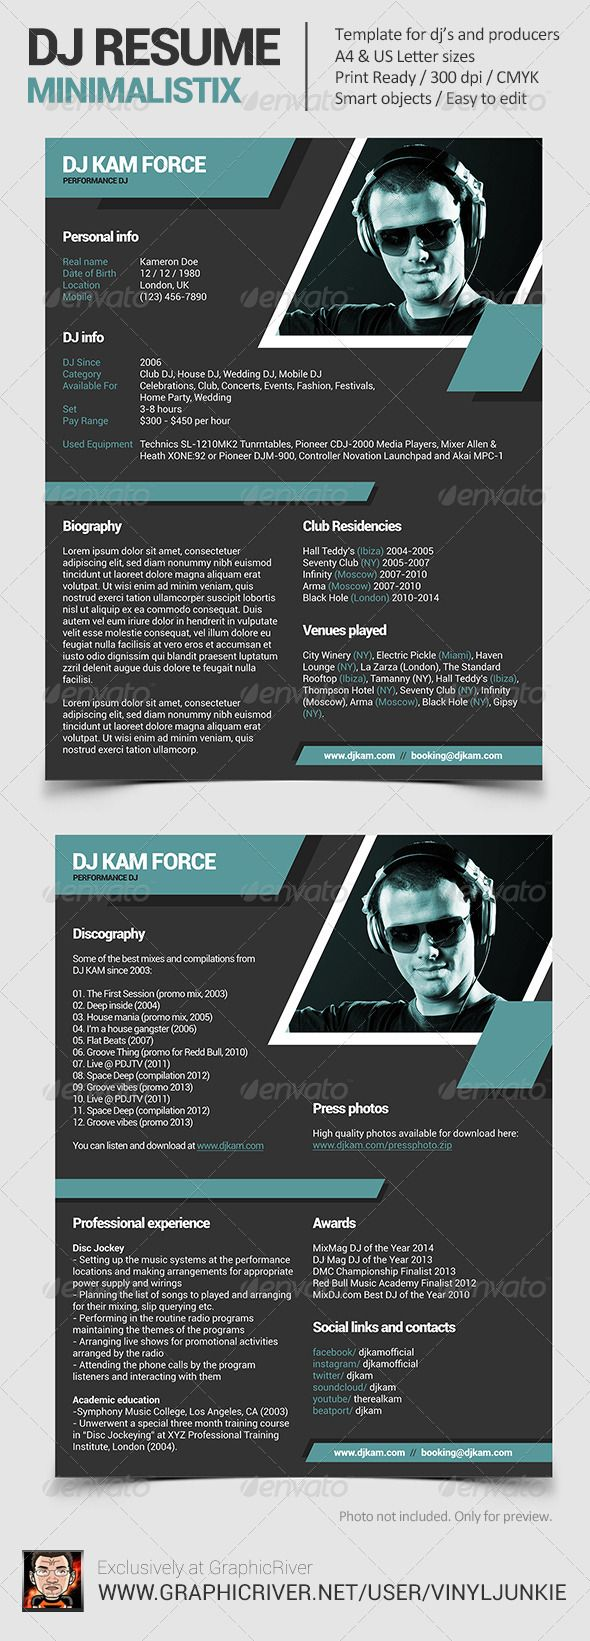 Best Dj Press Kit And Dj Resume Templates Images On